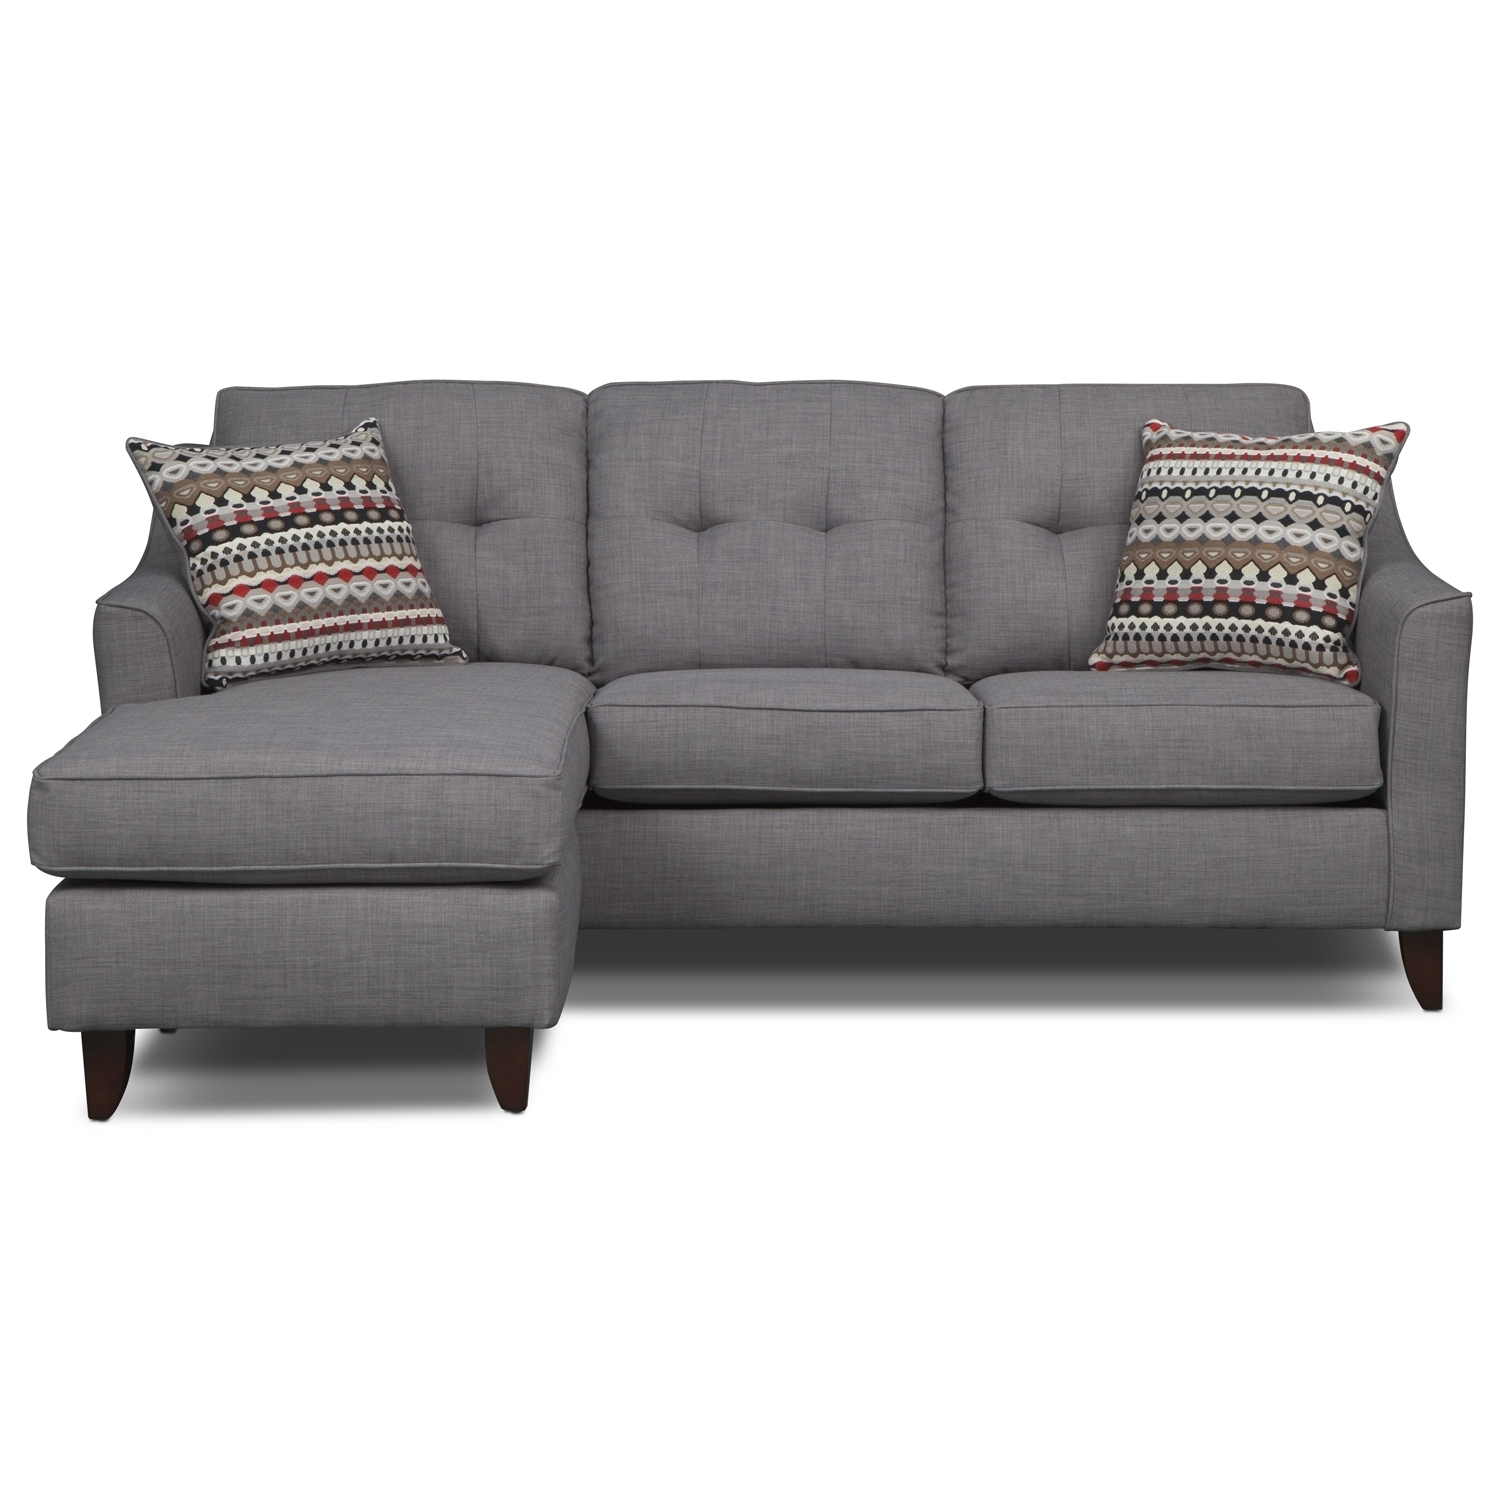 Value City Sofas with regard to Fashionable Value City Furniture Sofa My Apartment Story